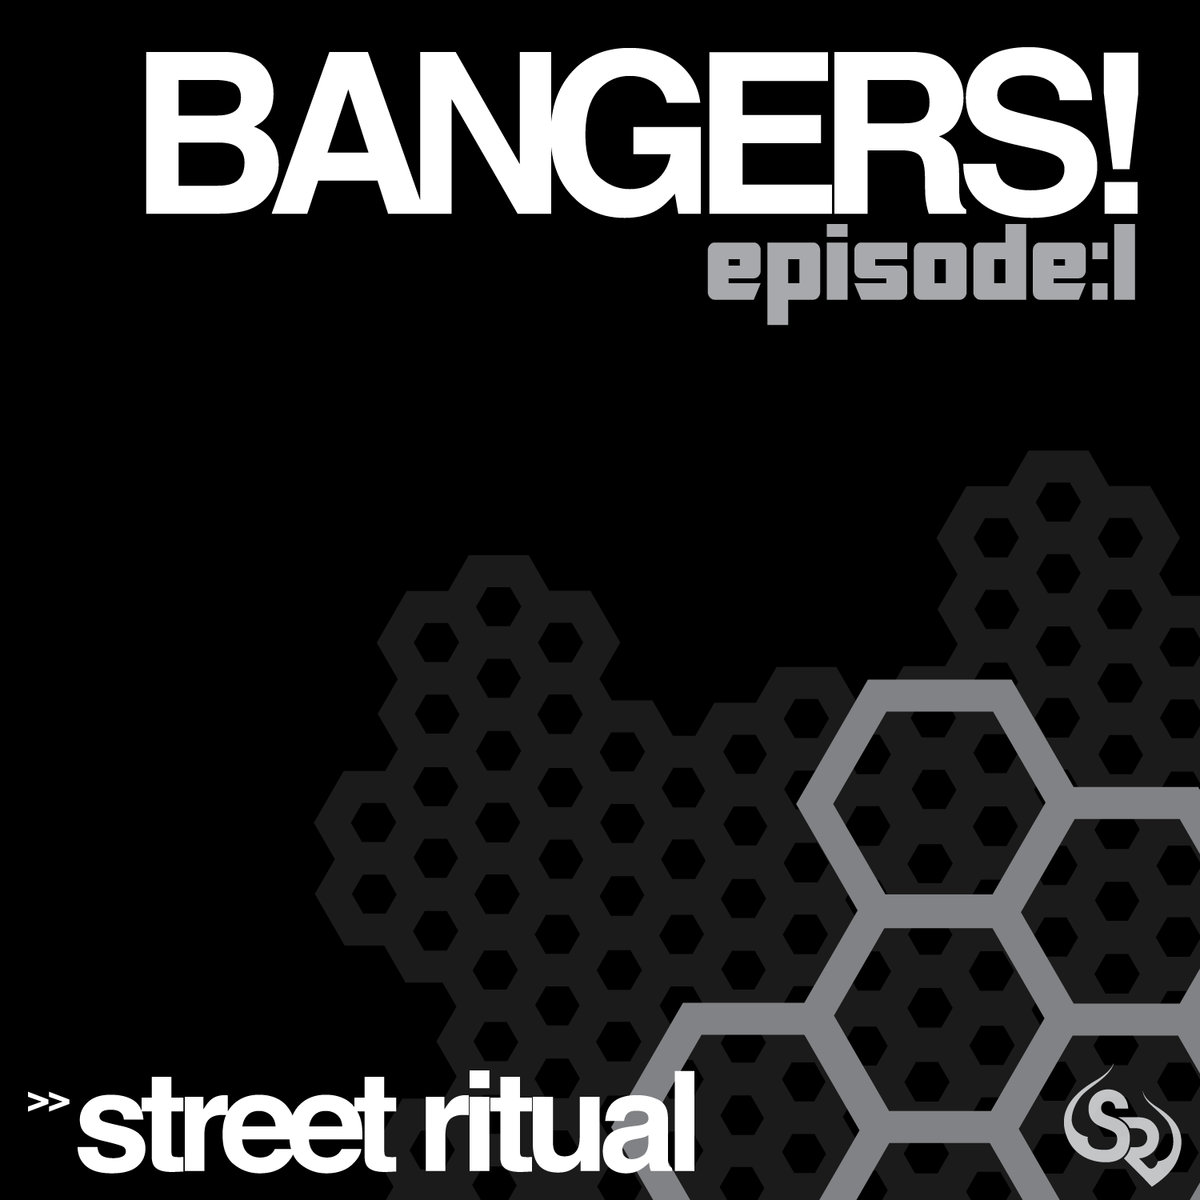 Duffrey - Way of the Learned Cat @ 'Various Artists - Bangers! Episode:1' album (bass, electronic)